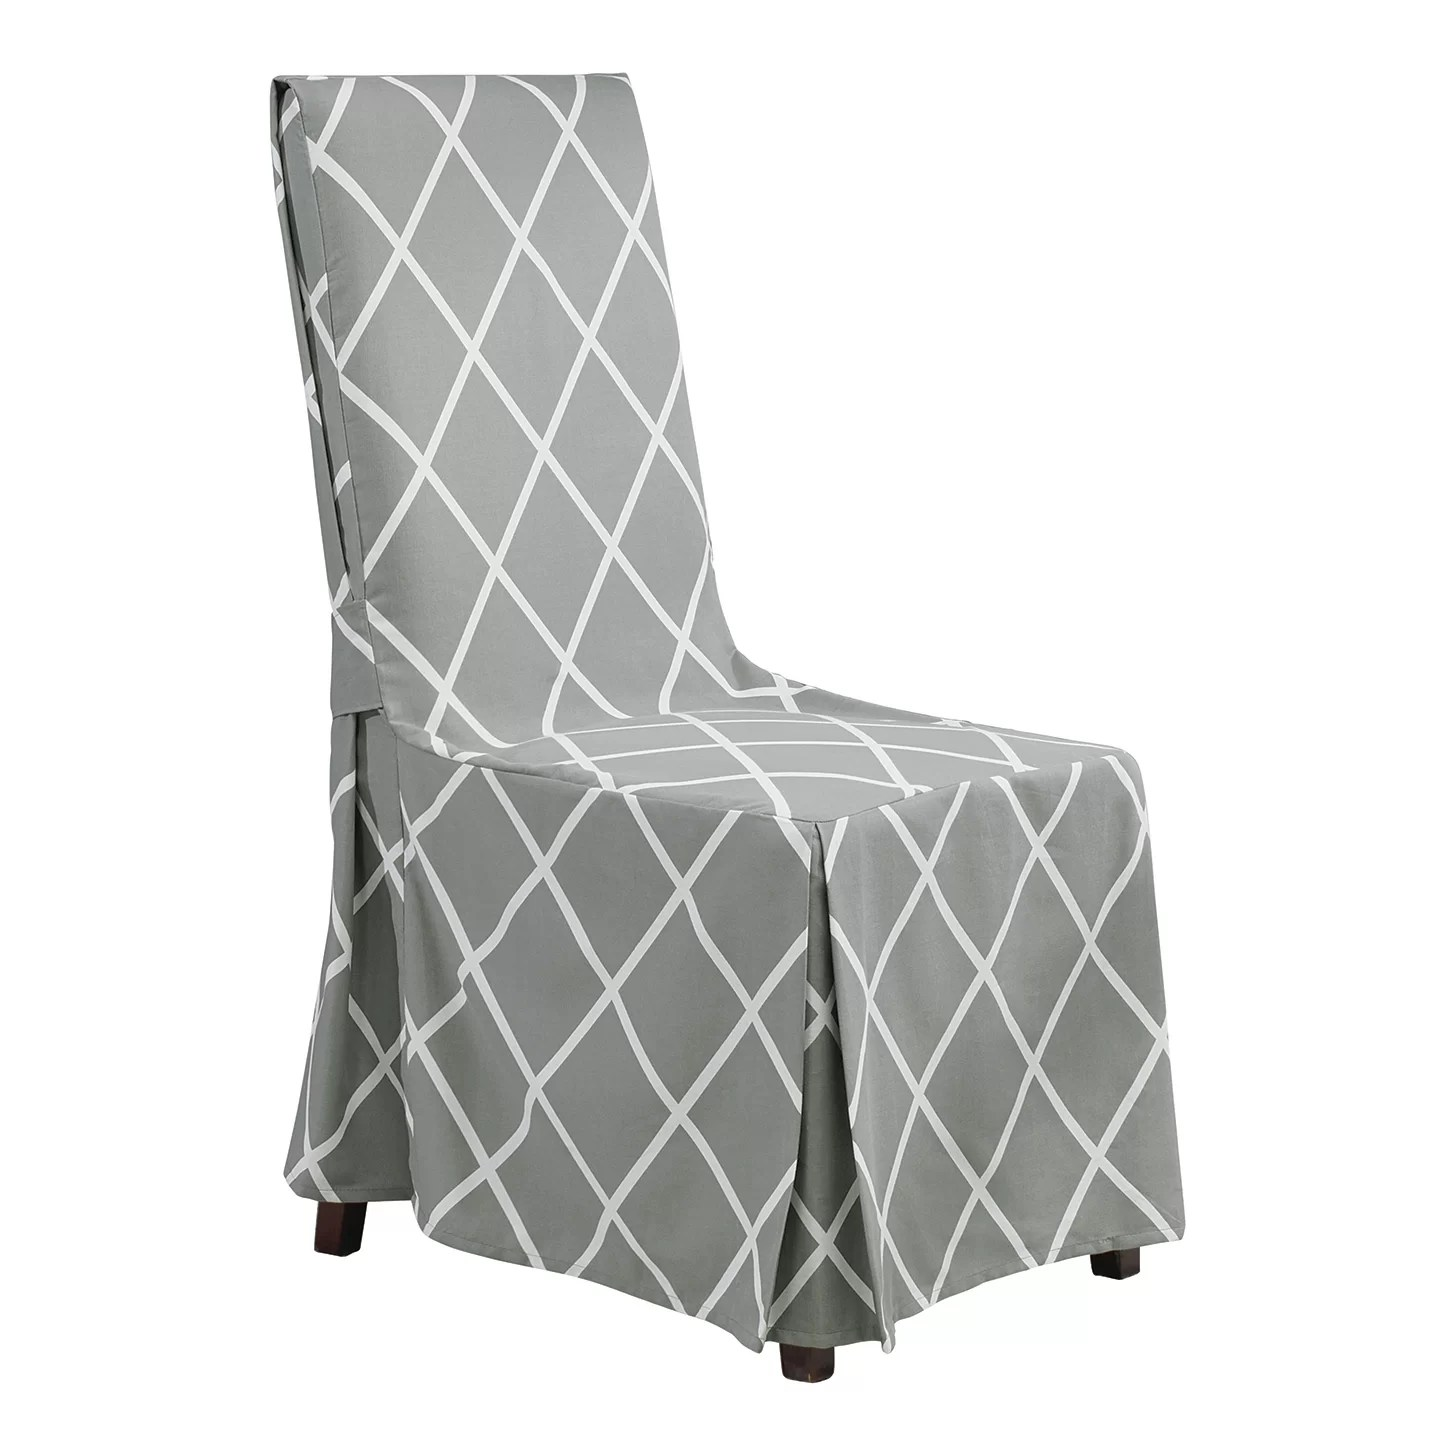 sure fit parsons chair slipcovers revolving manufacturers in chennai lattice parson skirted slipcover and reviews